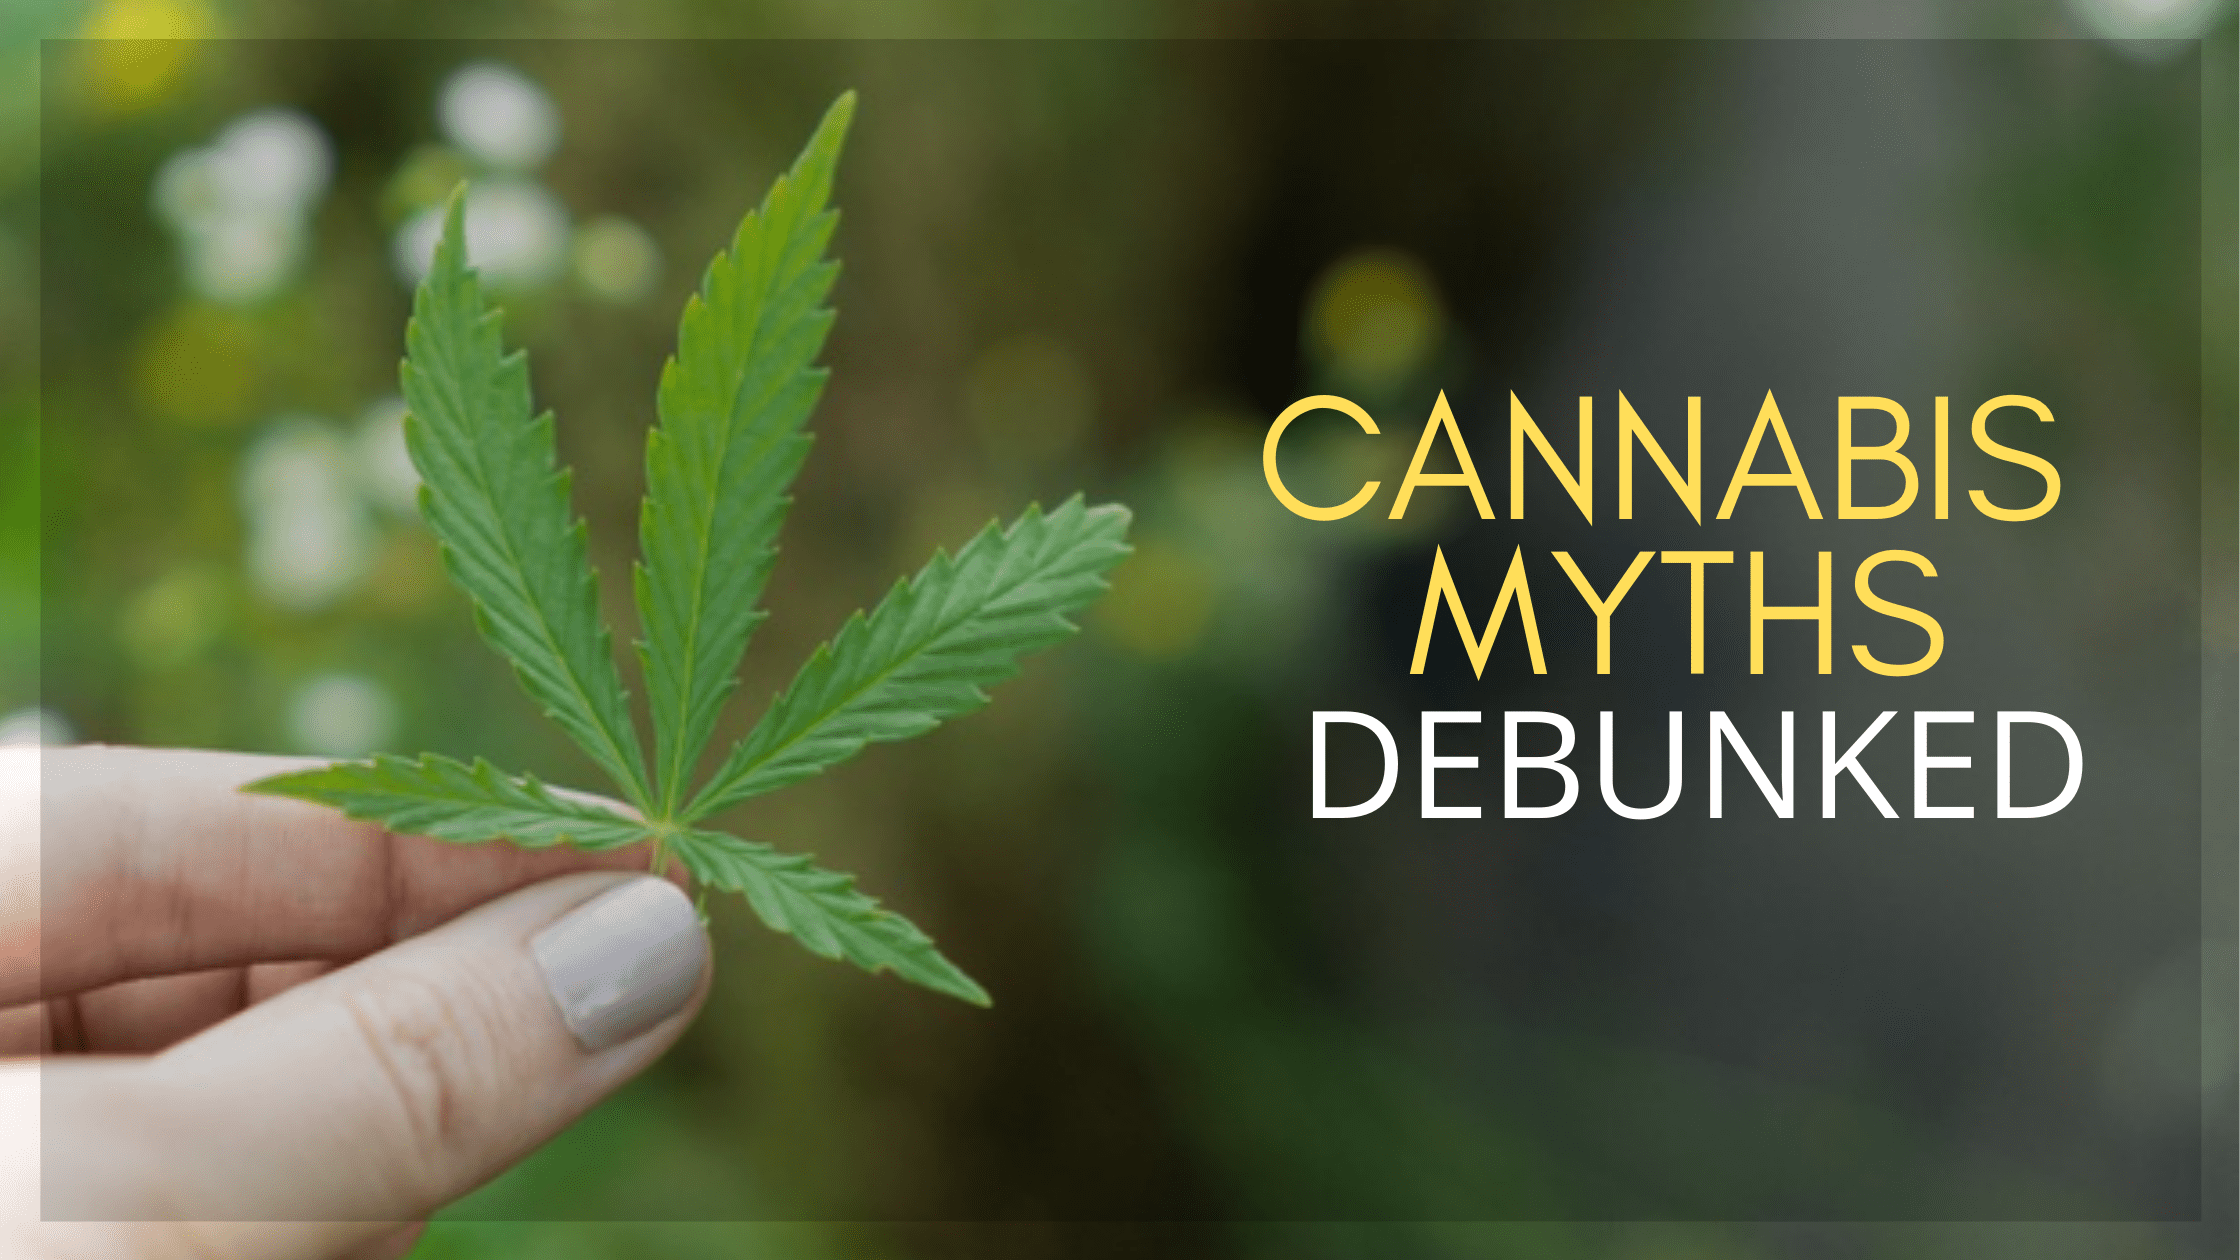 Misconceptions About Cannabis